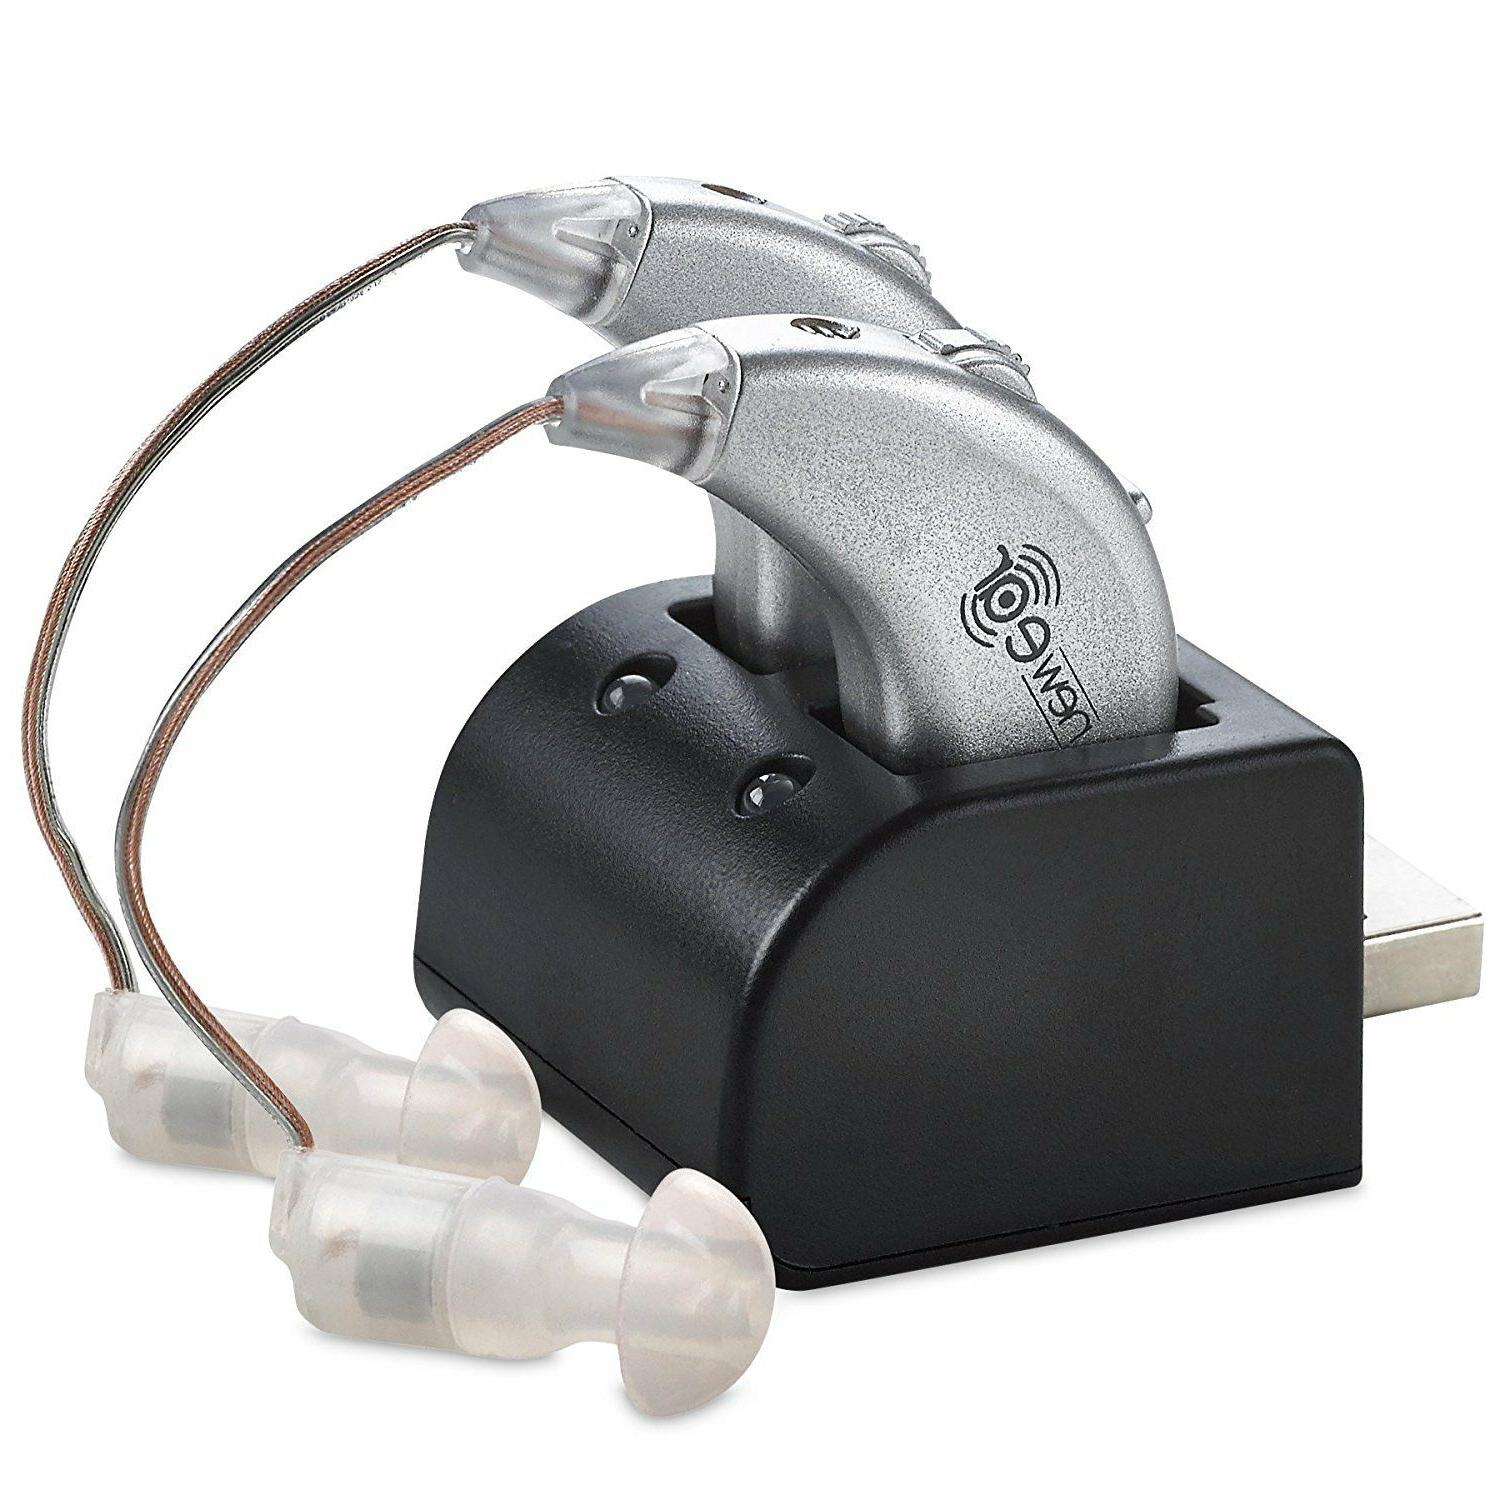 2 USB Amplifier The Ear BTE